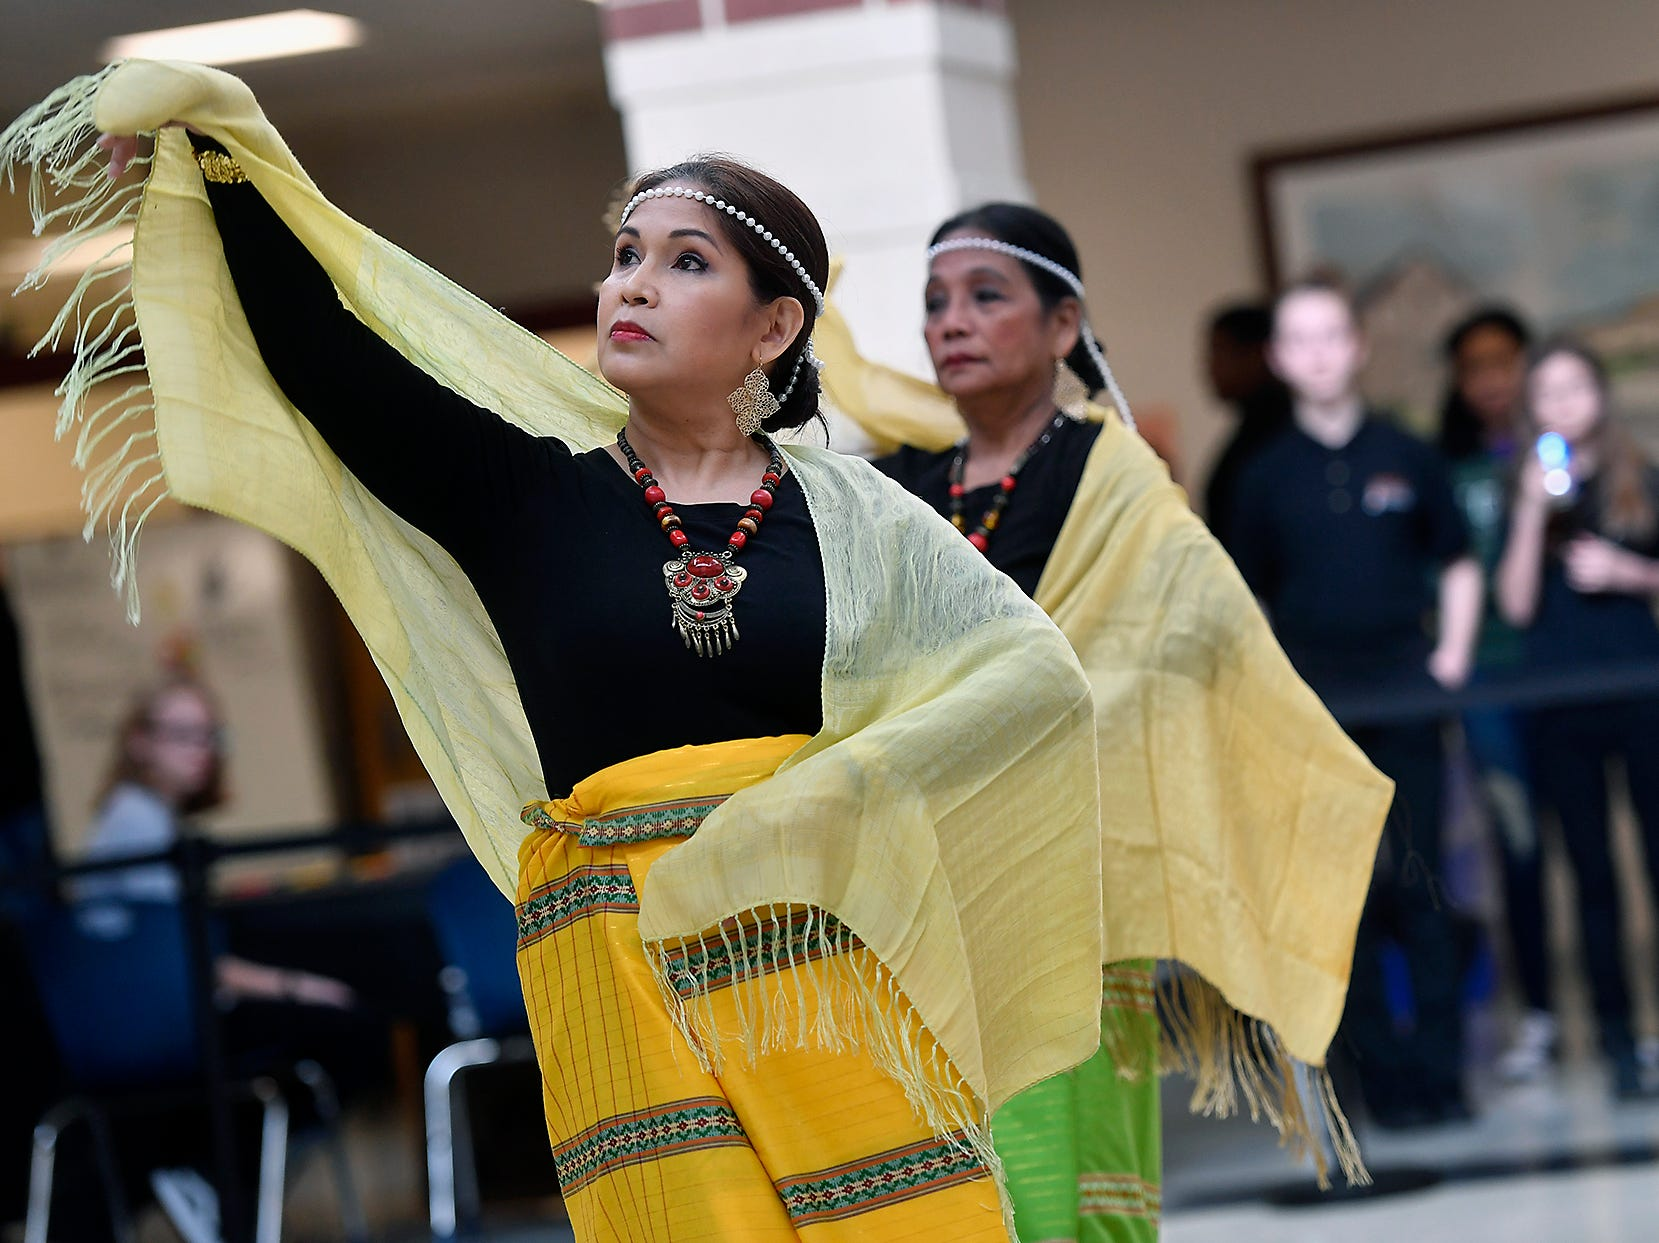 Emy Delgaudio, left, and Mila Phomas, of the Kalayaan USA Cultural Ensemble, perform traditional Filipino dance during the 13th Annual Diversity Celebration at Central York High School, Thursday, April 11, 2019.John A. Pavoncello photo